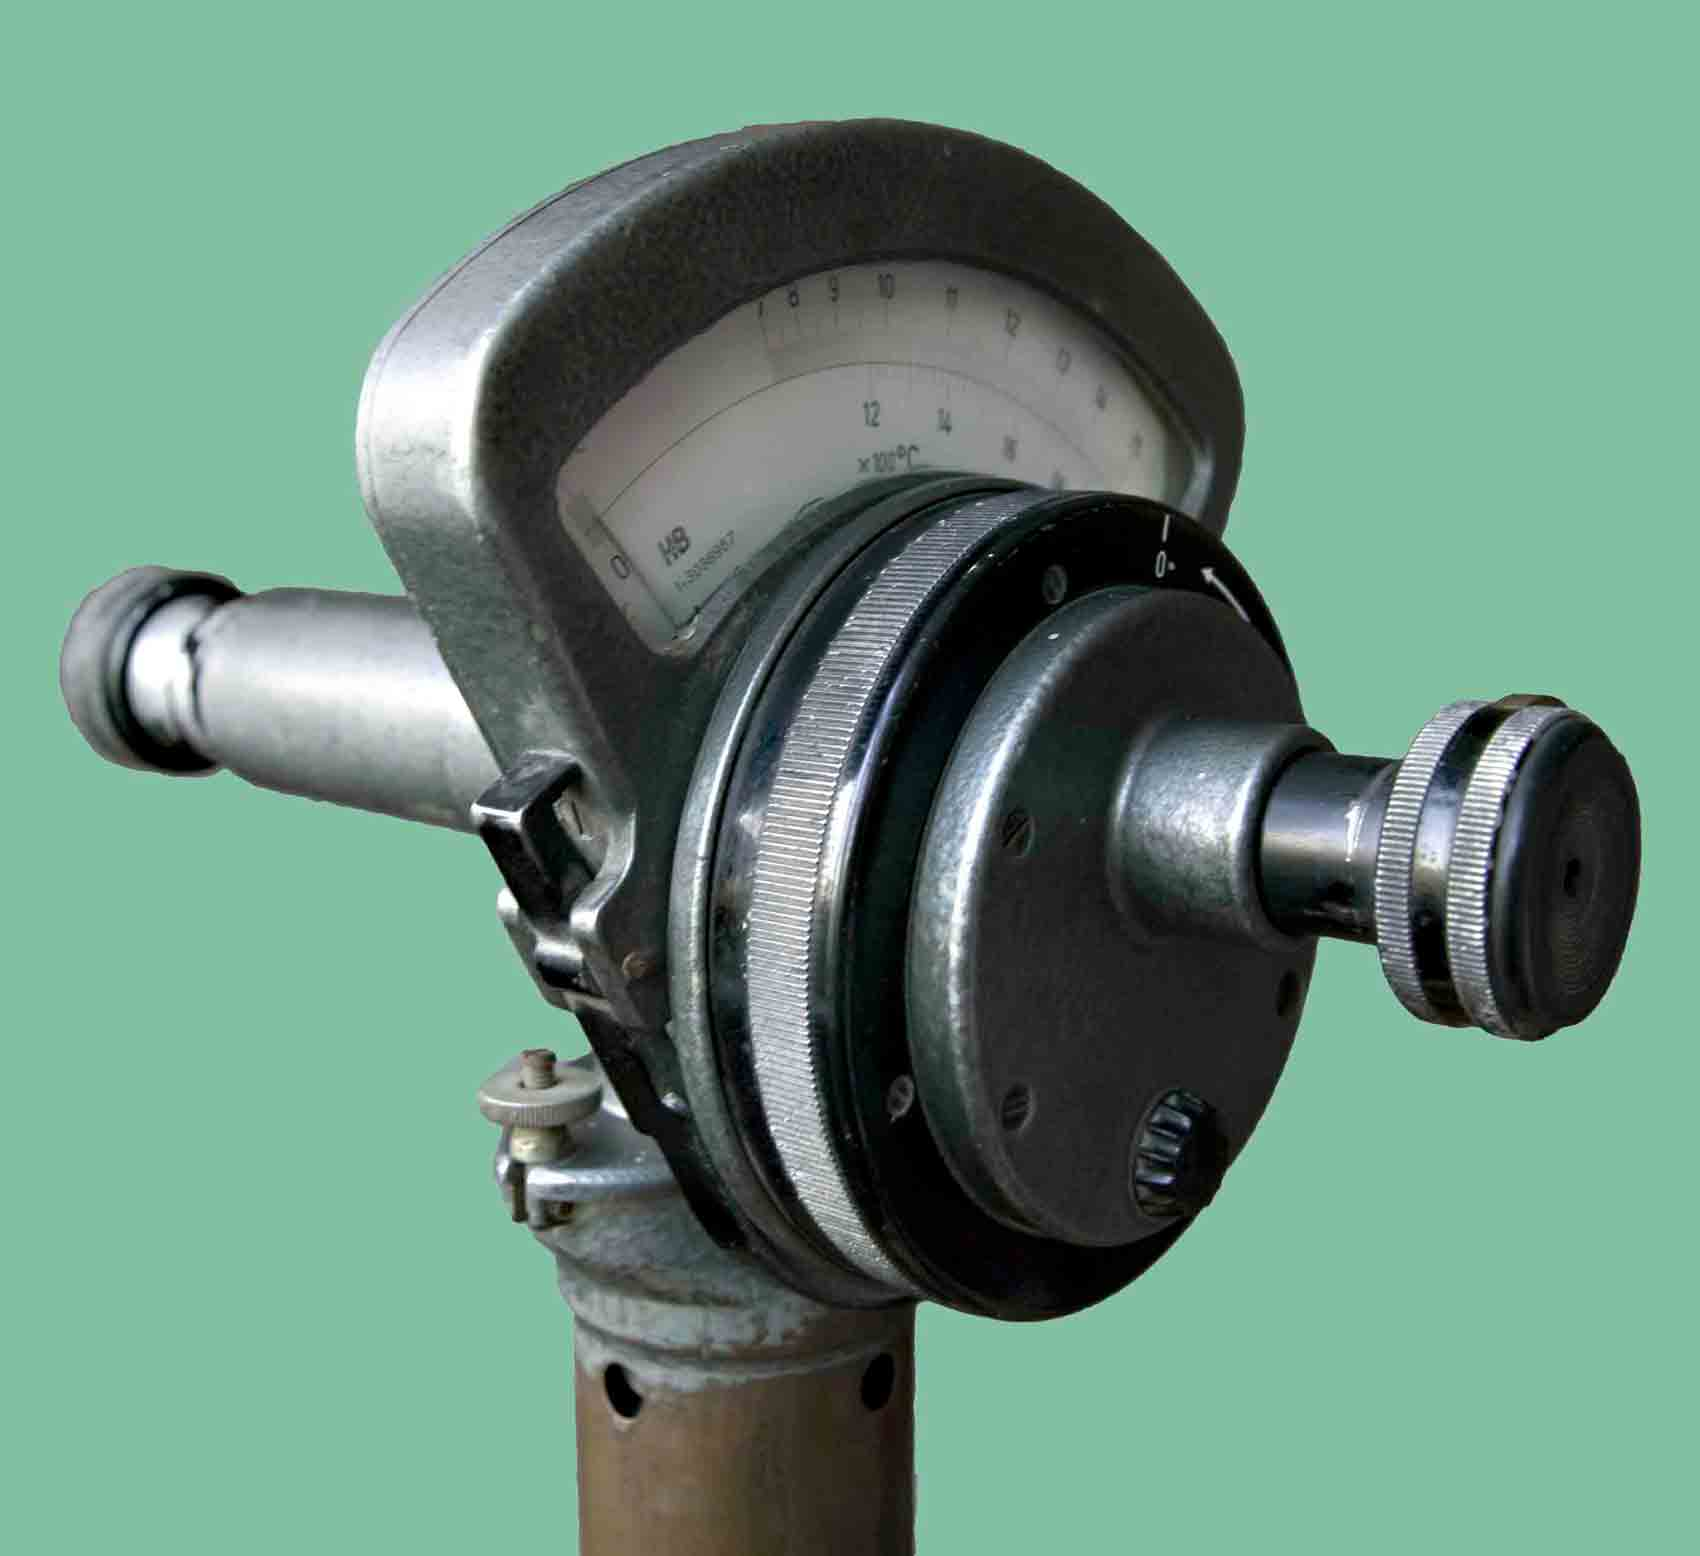 Deprez_Photo_Pyrometer_H&B_Three-quarter_view.jpg